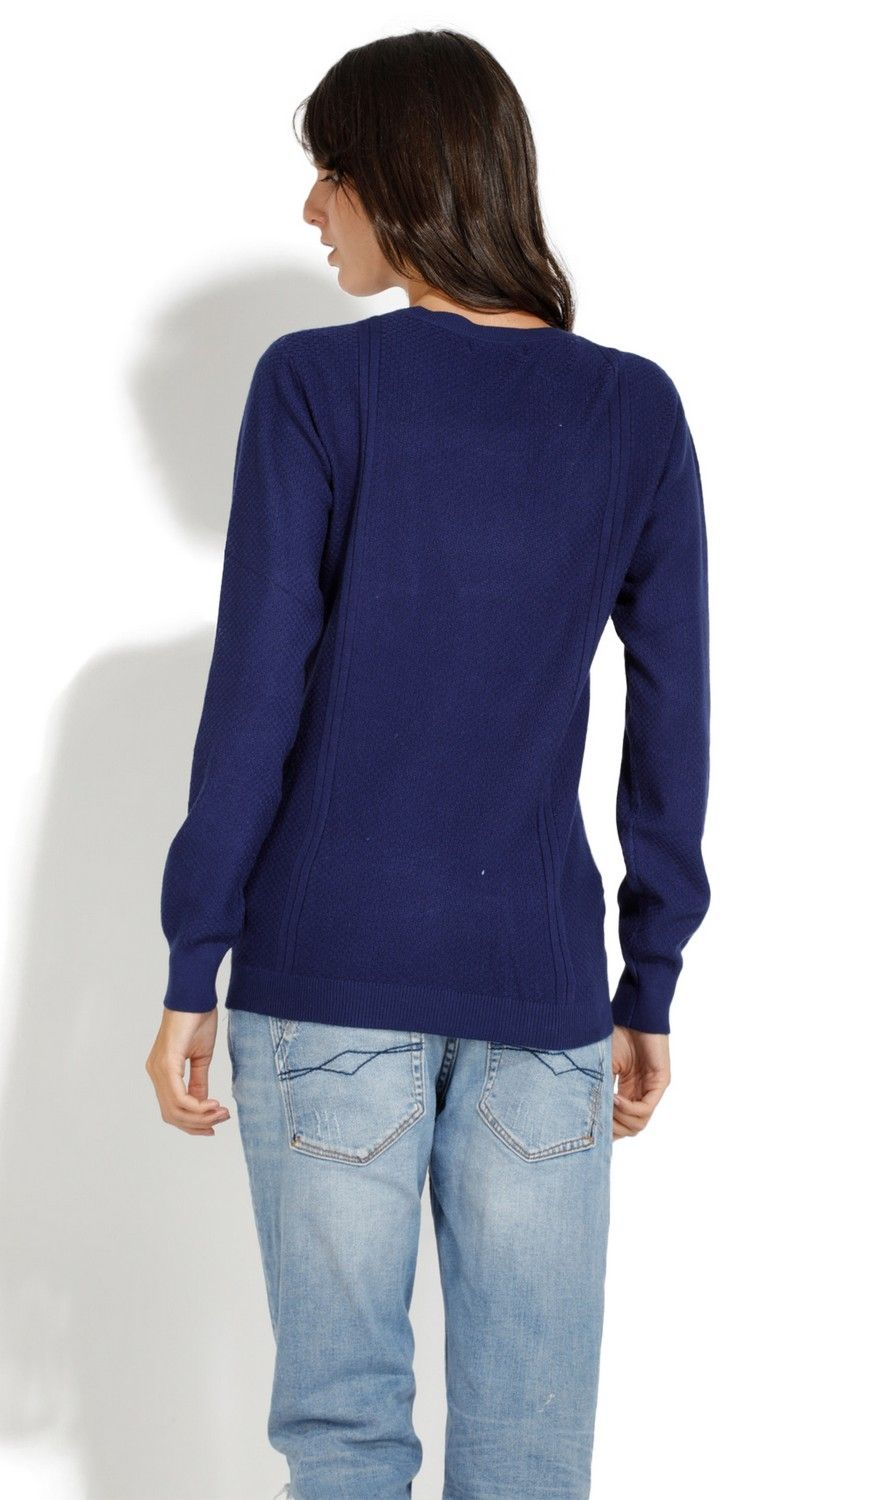 William De Faye Round Neck Long Sleeve Sweater in Navy